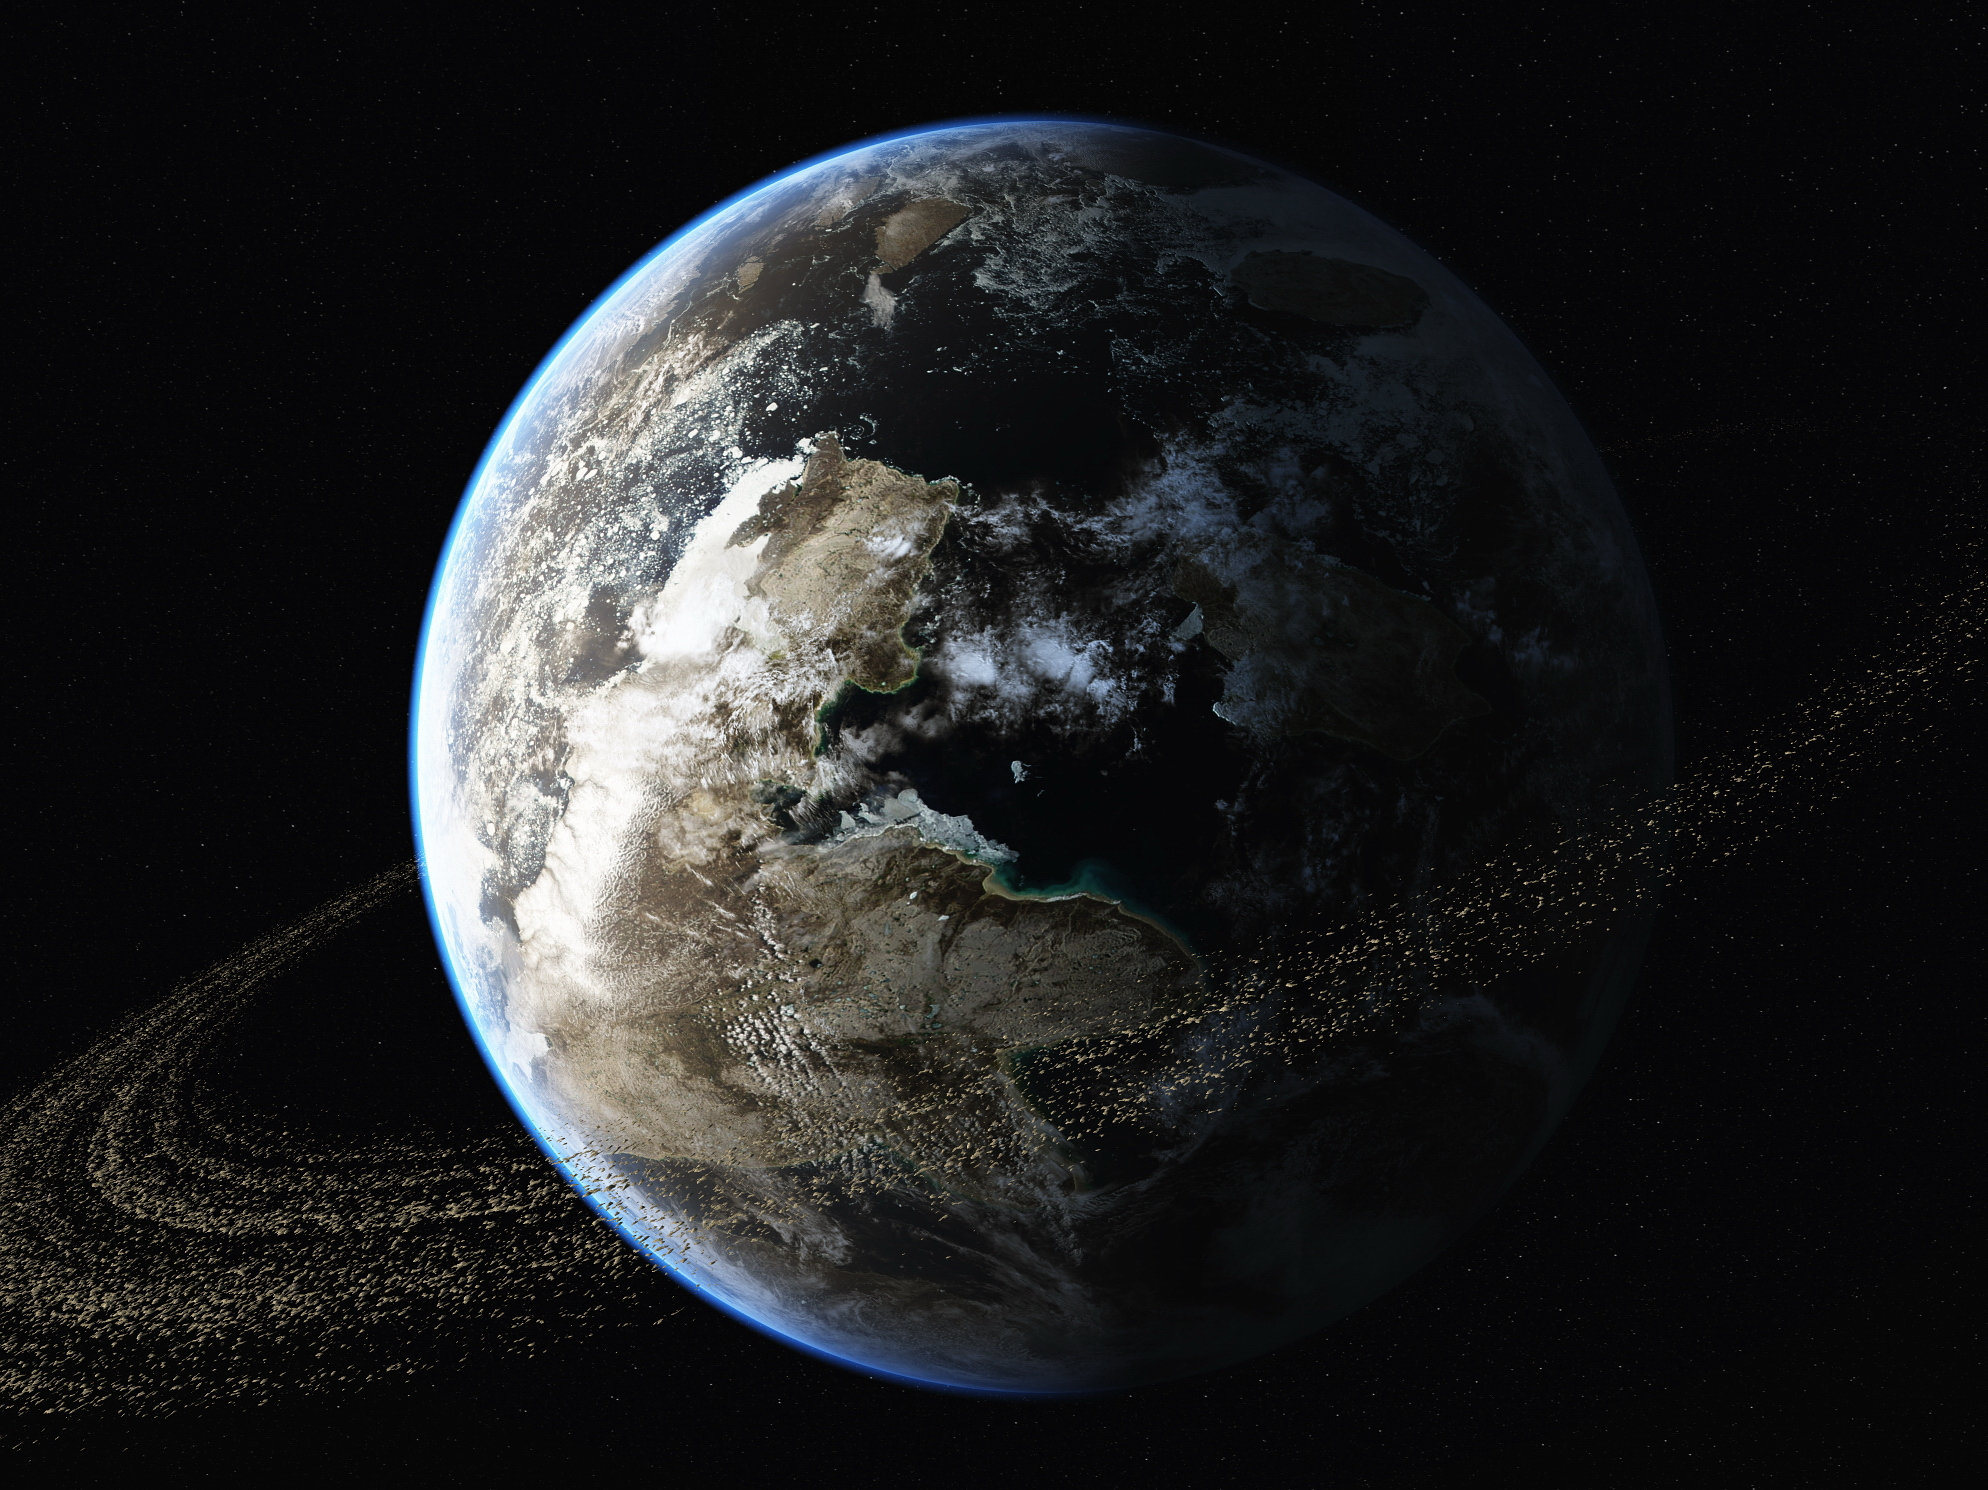 Planet Texture Test 2A by rich35211 on DeviantArt